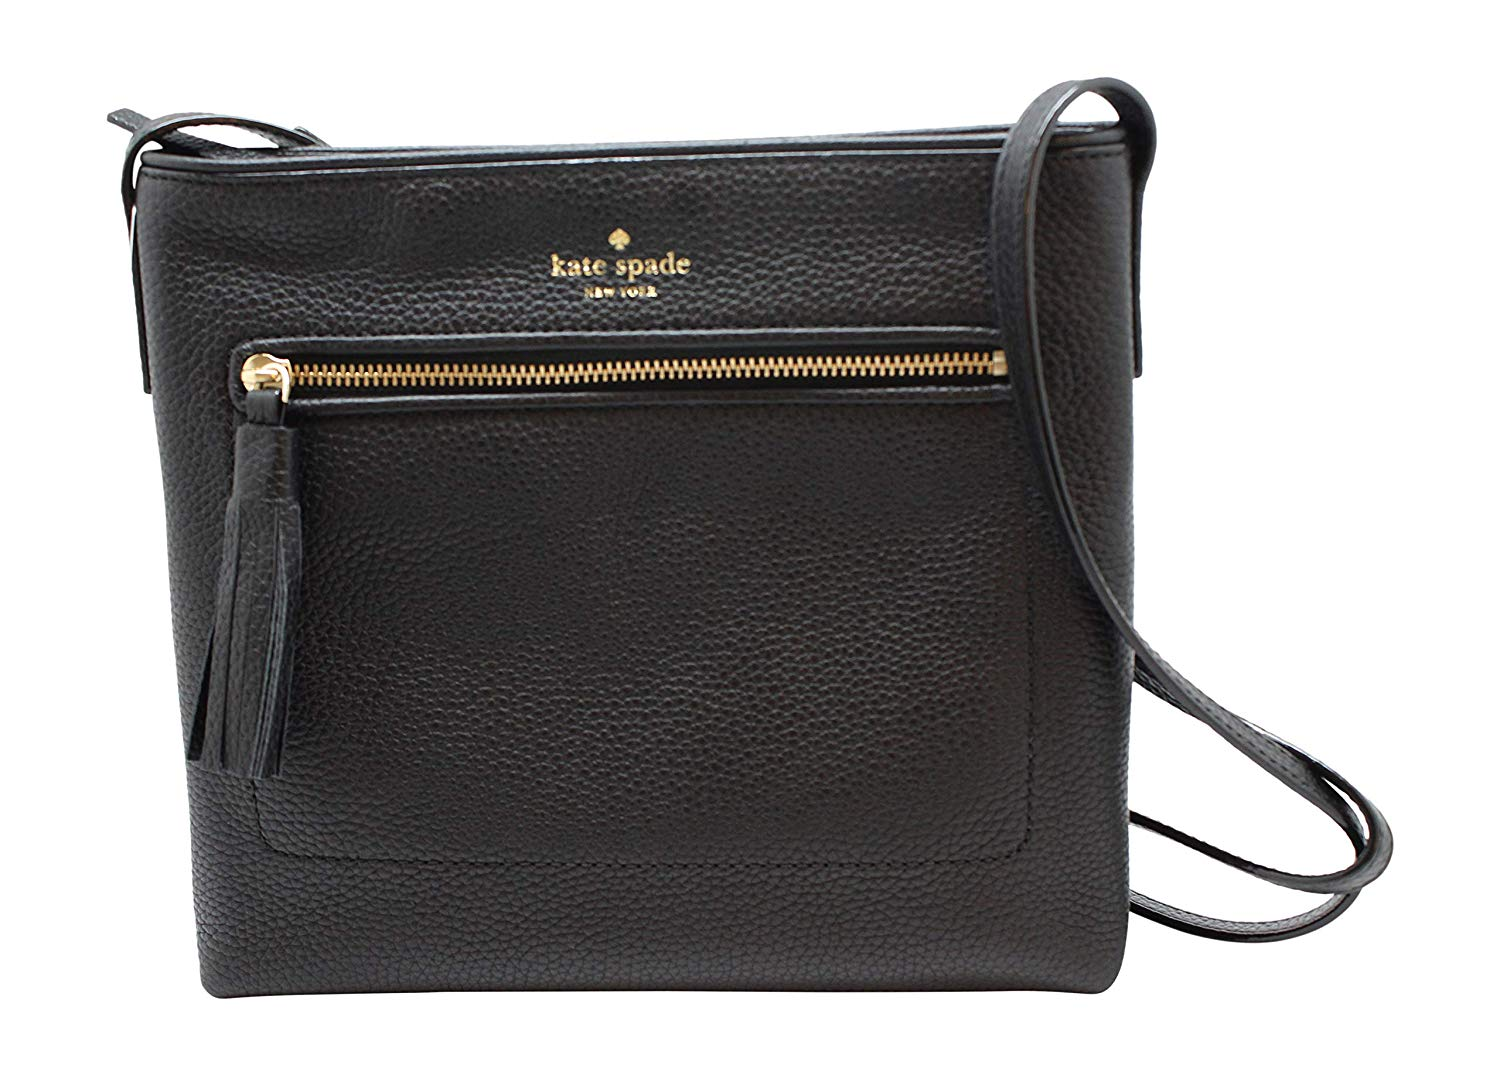 Review of Kate Spade New York Chester Street Dessi Pebbled Leather Shoulder Bag